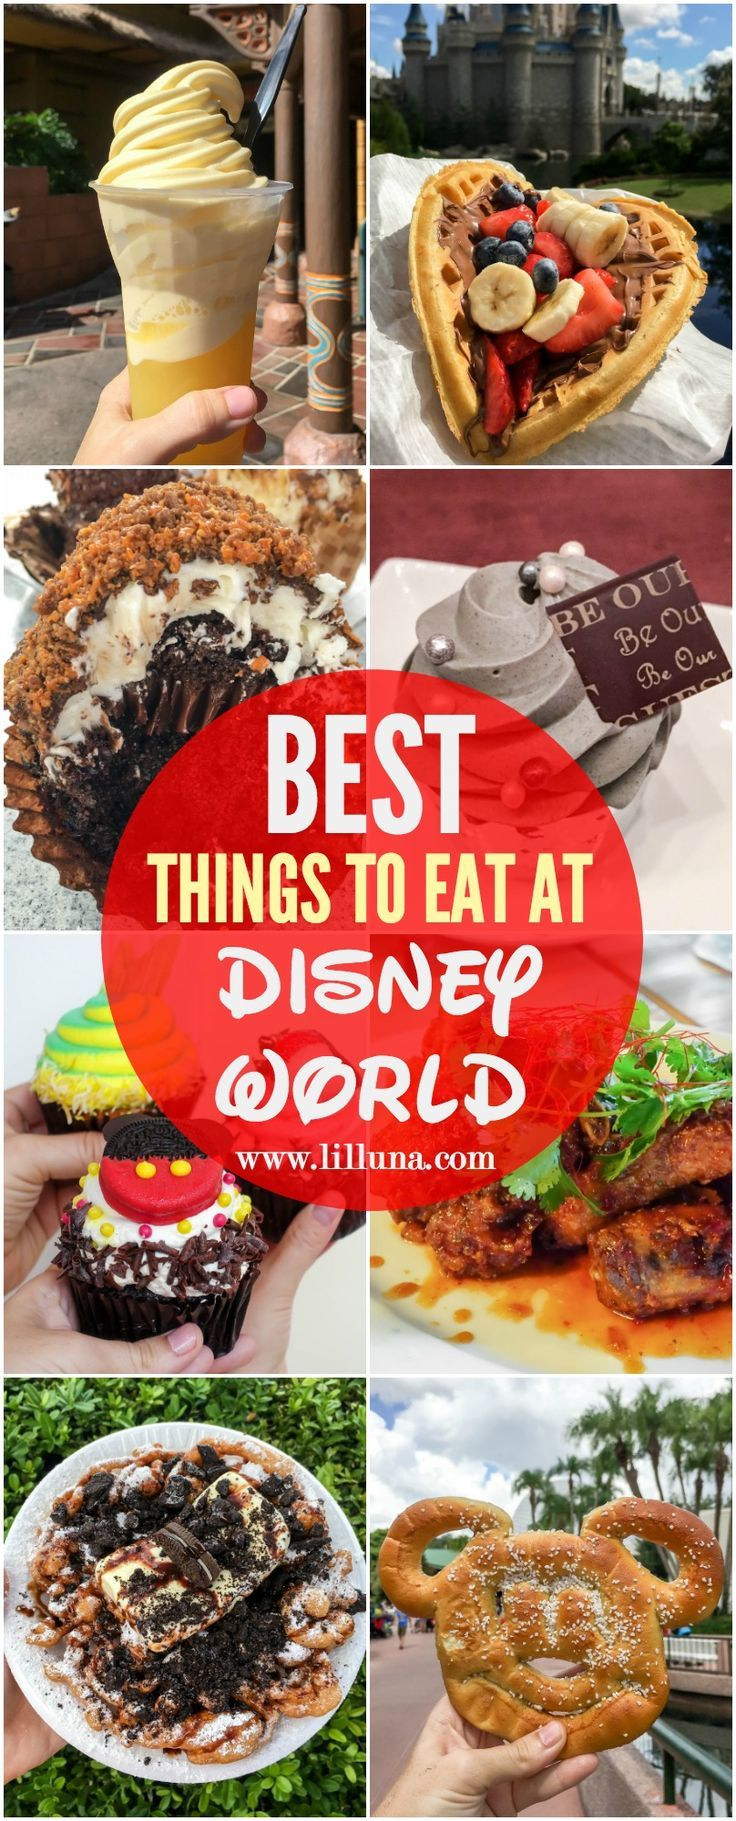 The BEST things to eat at Disney World - a delicious collection of treats, food and snacks to try at the most Magical Place on Earth!